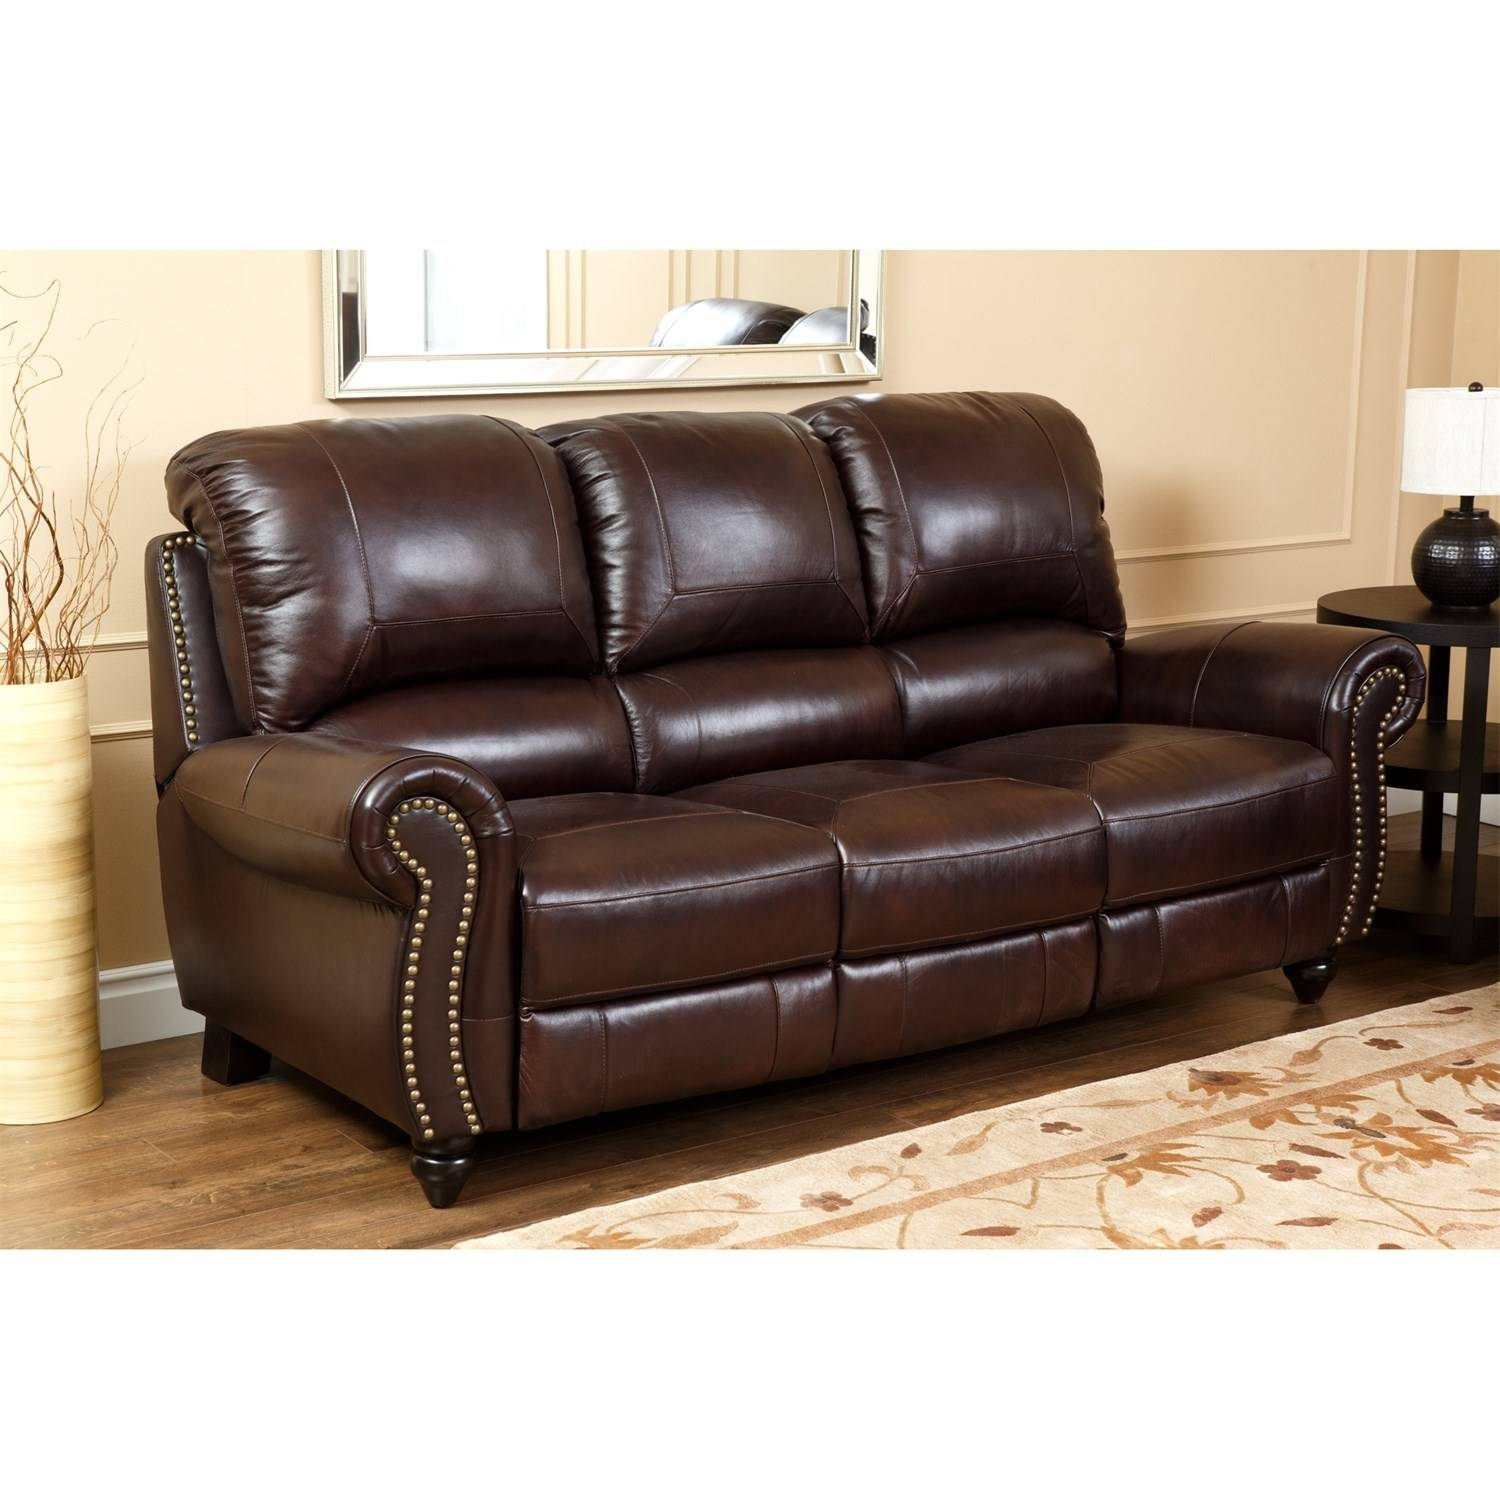 Abbyson Living Ch-8857-Brg-3/1 Canterbury Leather Pushback within Canterbury Leather Sofas (Image 4 of 30)